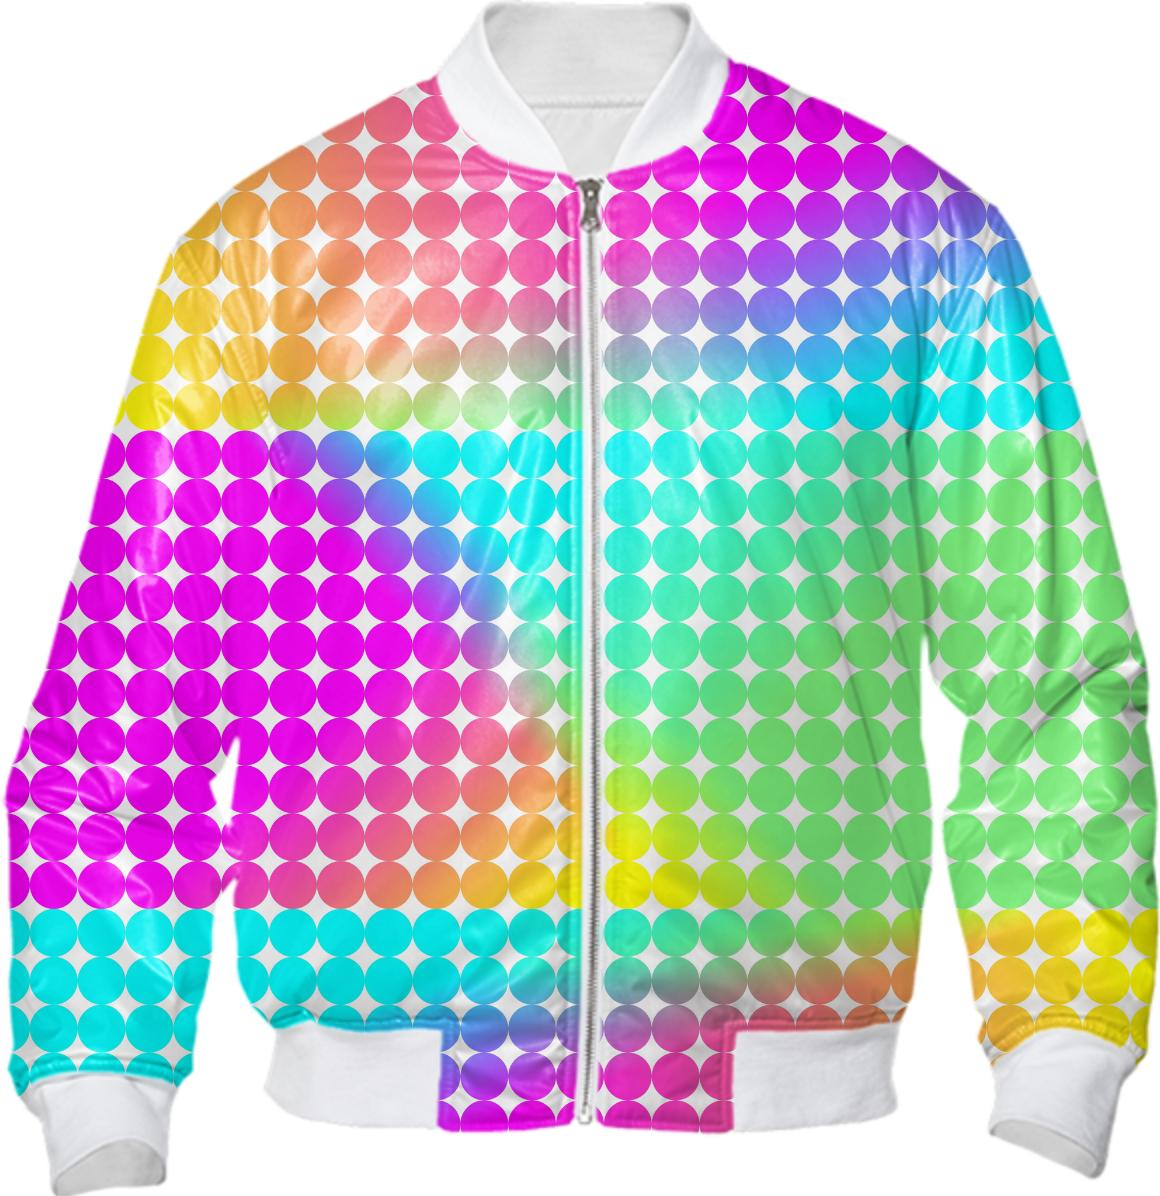 Trendy Bright Colorful Neon Rainbow Spotted Fashion Bomber Jacket Paom